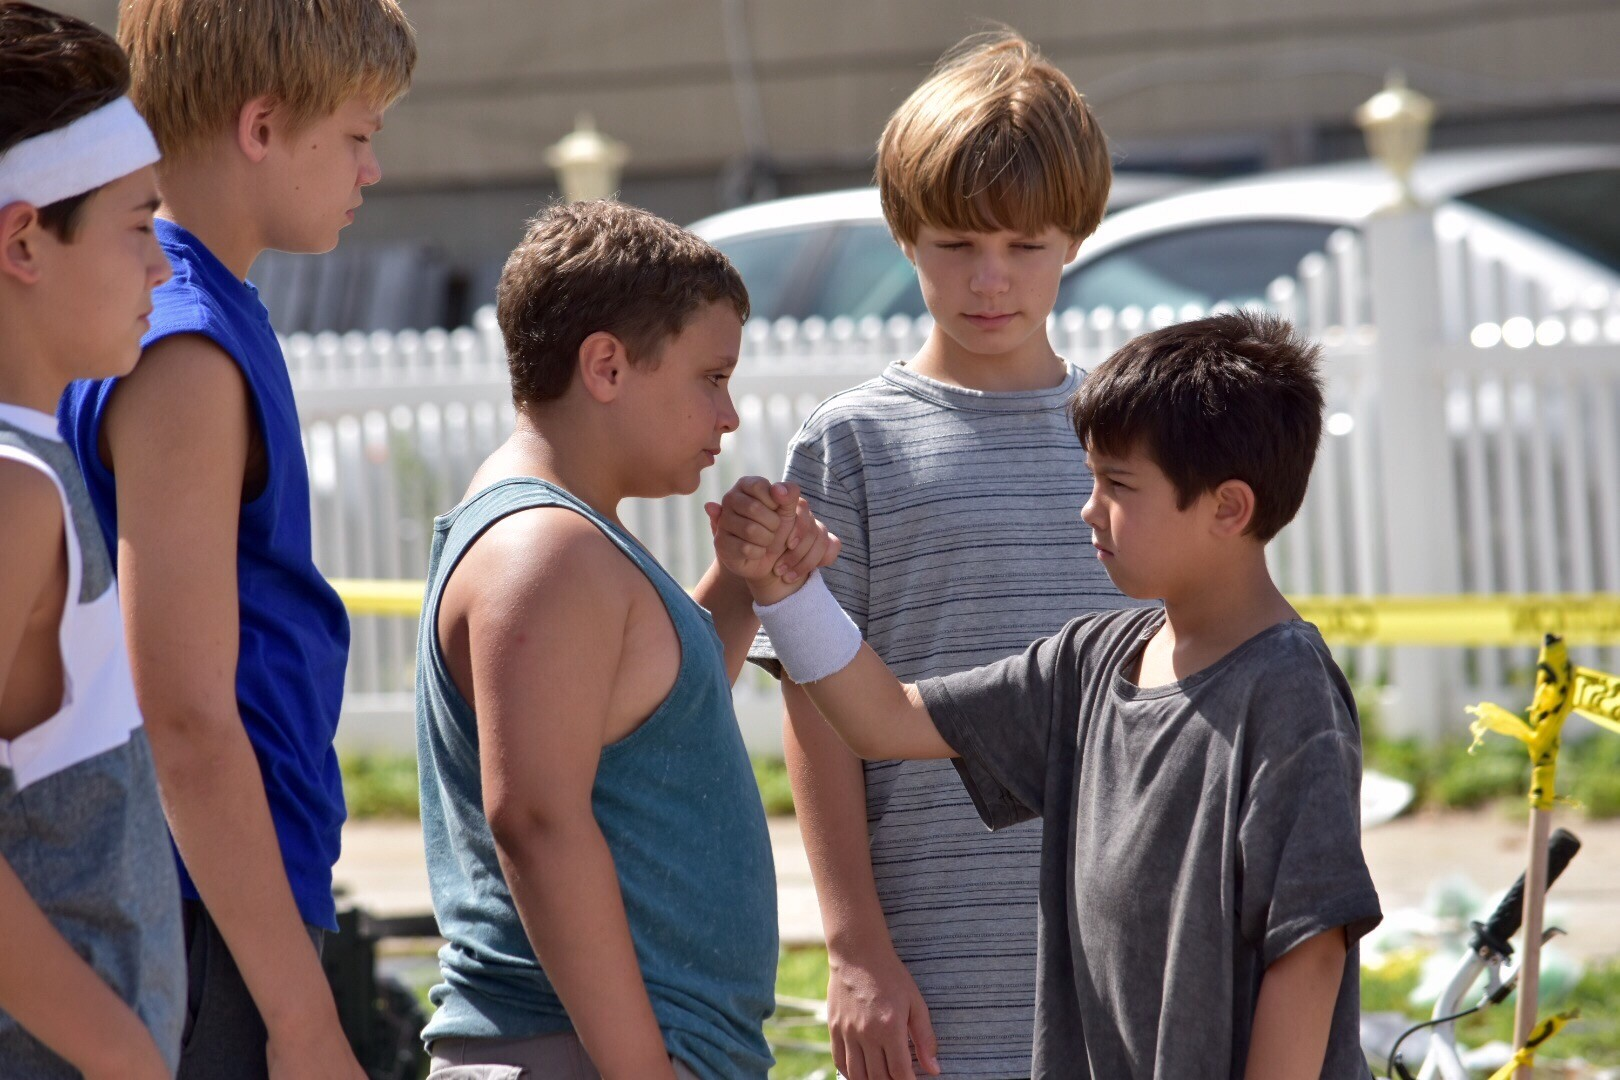 Colin Critchley (Sal), far left; Harrison Wittmeyer (Billy), James DiGiacomo (Dom), Tanner Flood (Brian), and Maxwell Apple (John) were cast in the roles of Budion and his friends as children.